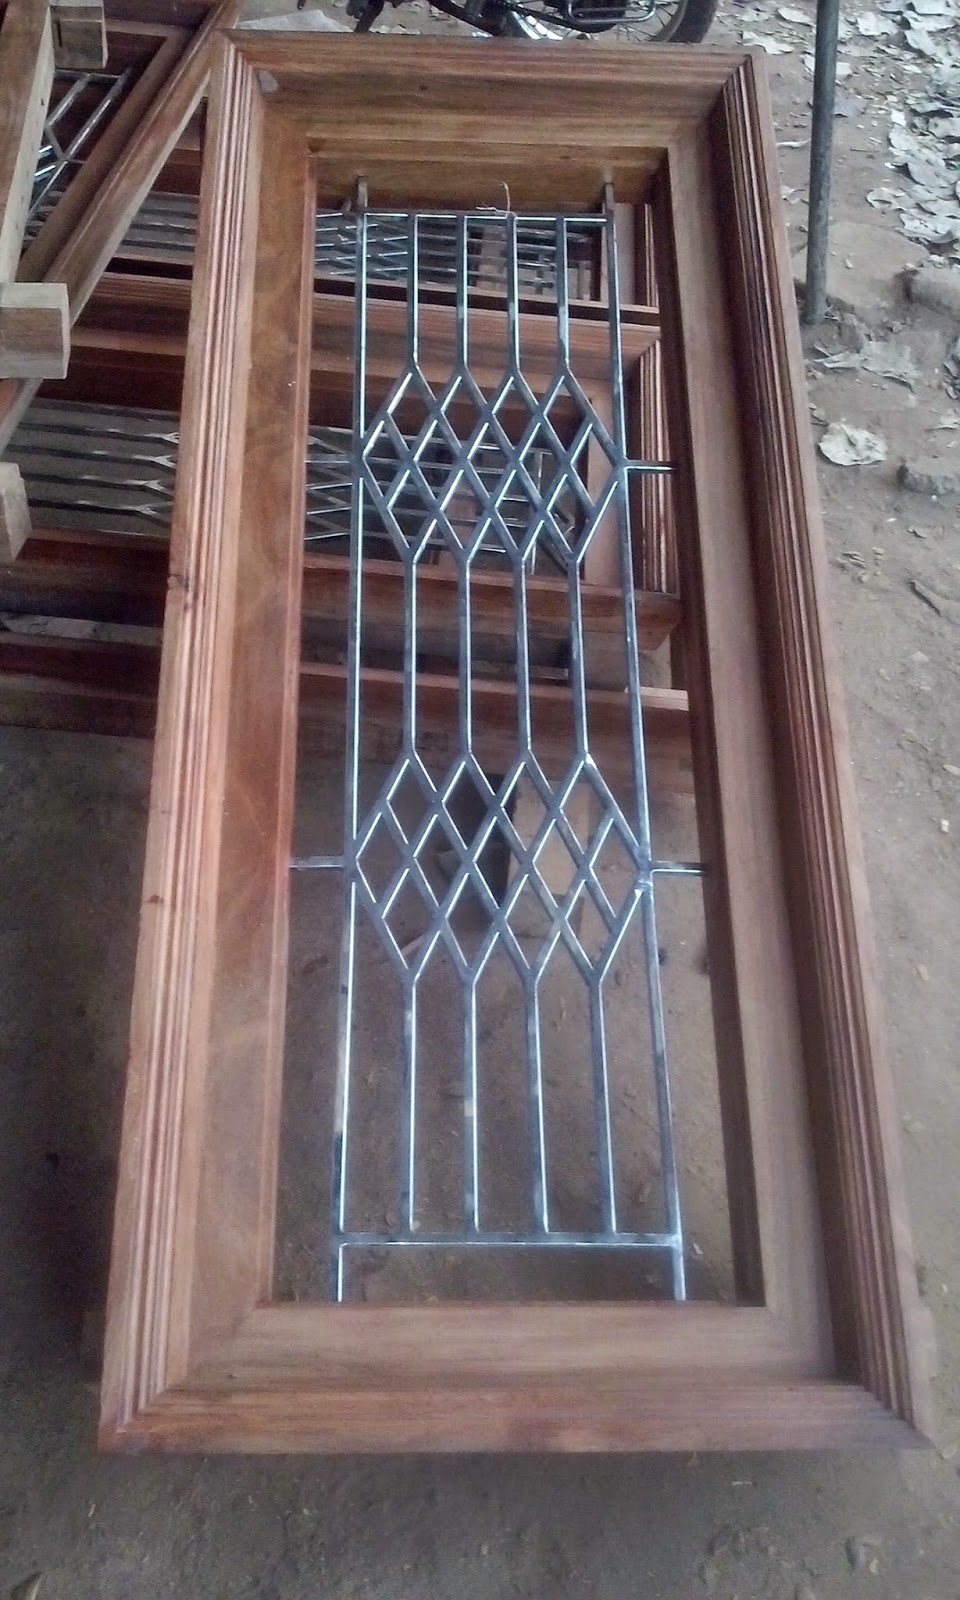 Kerala style carpenter works and designs february 2015 for Window design wooden